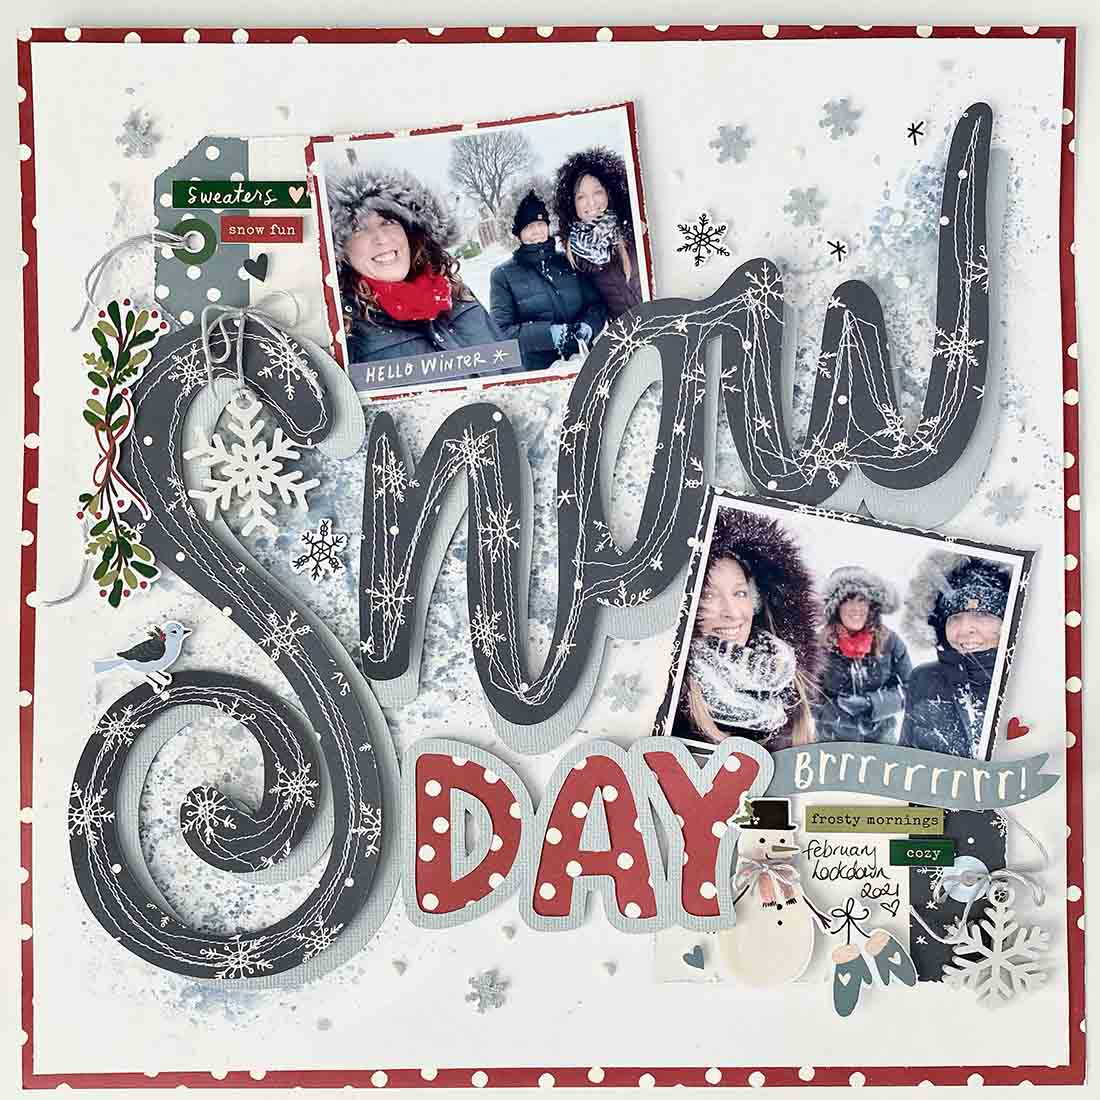 Free Snow day cut file large title for scrapbooking page